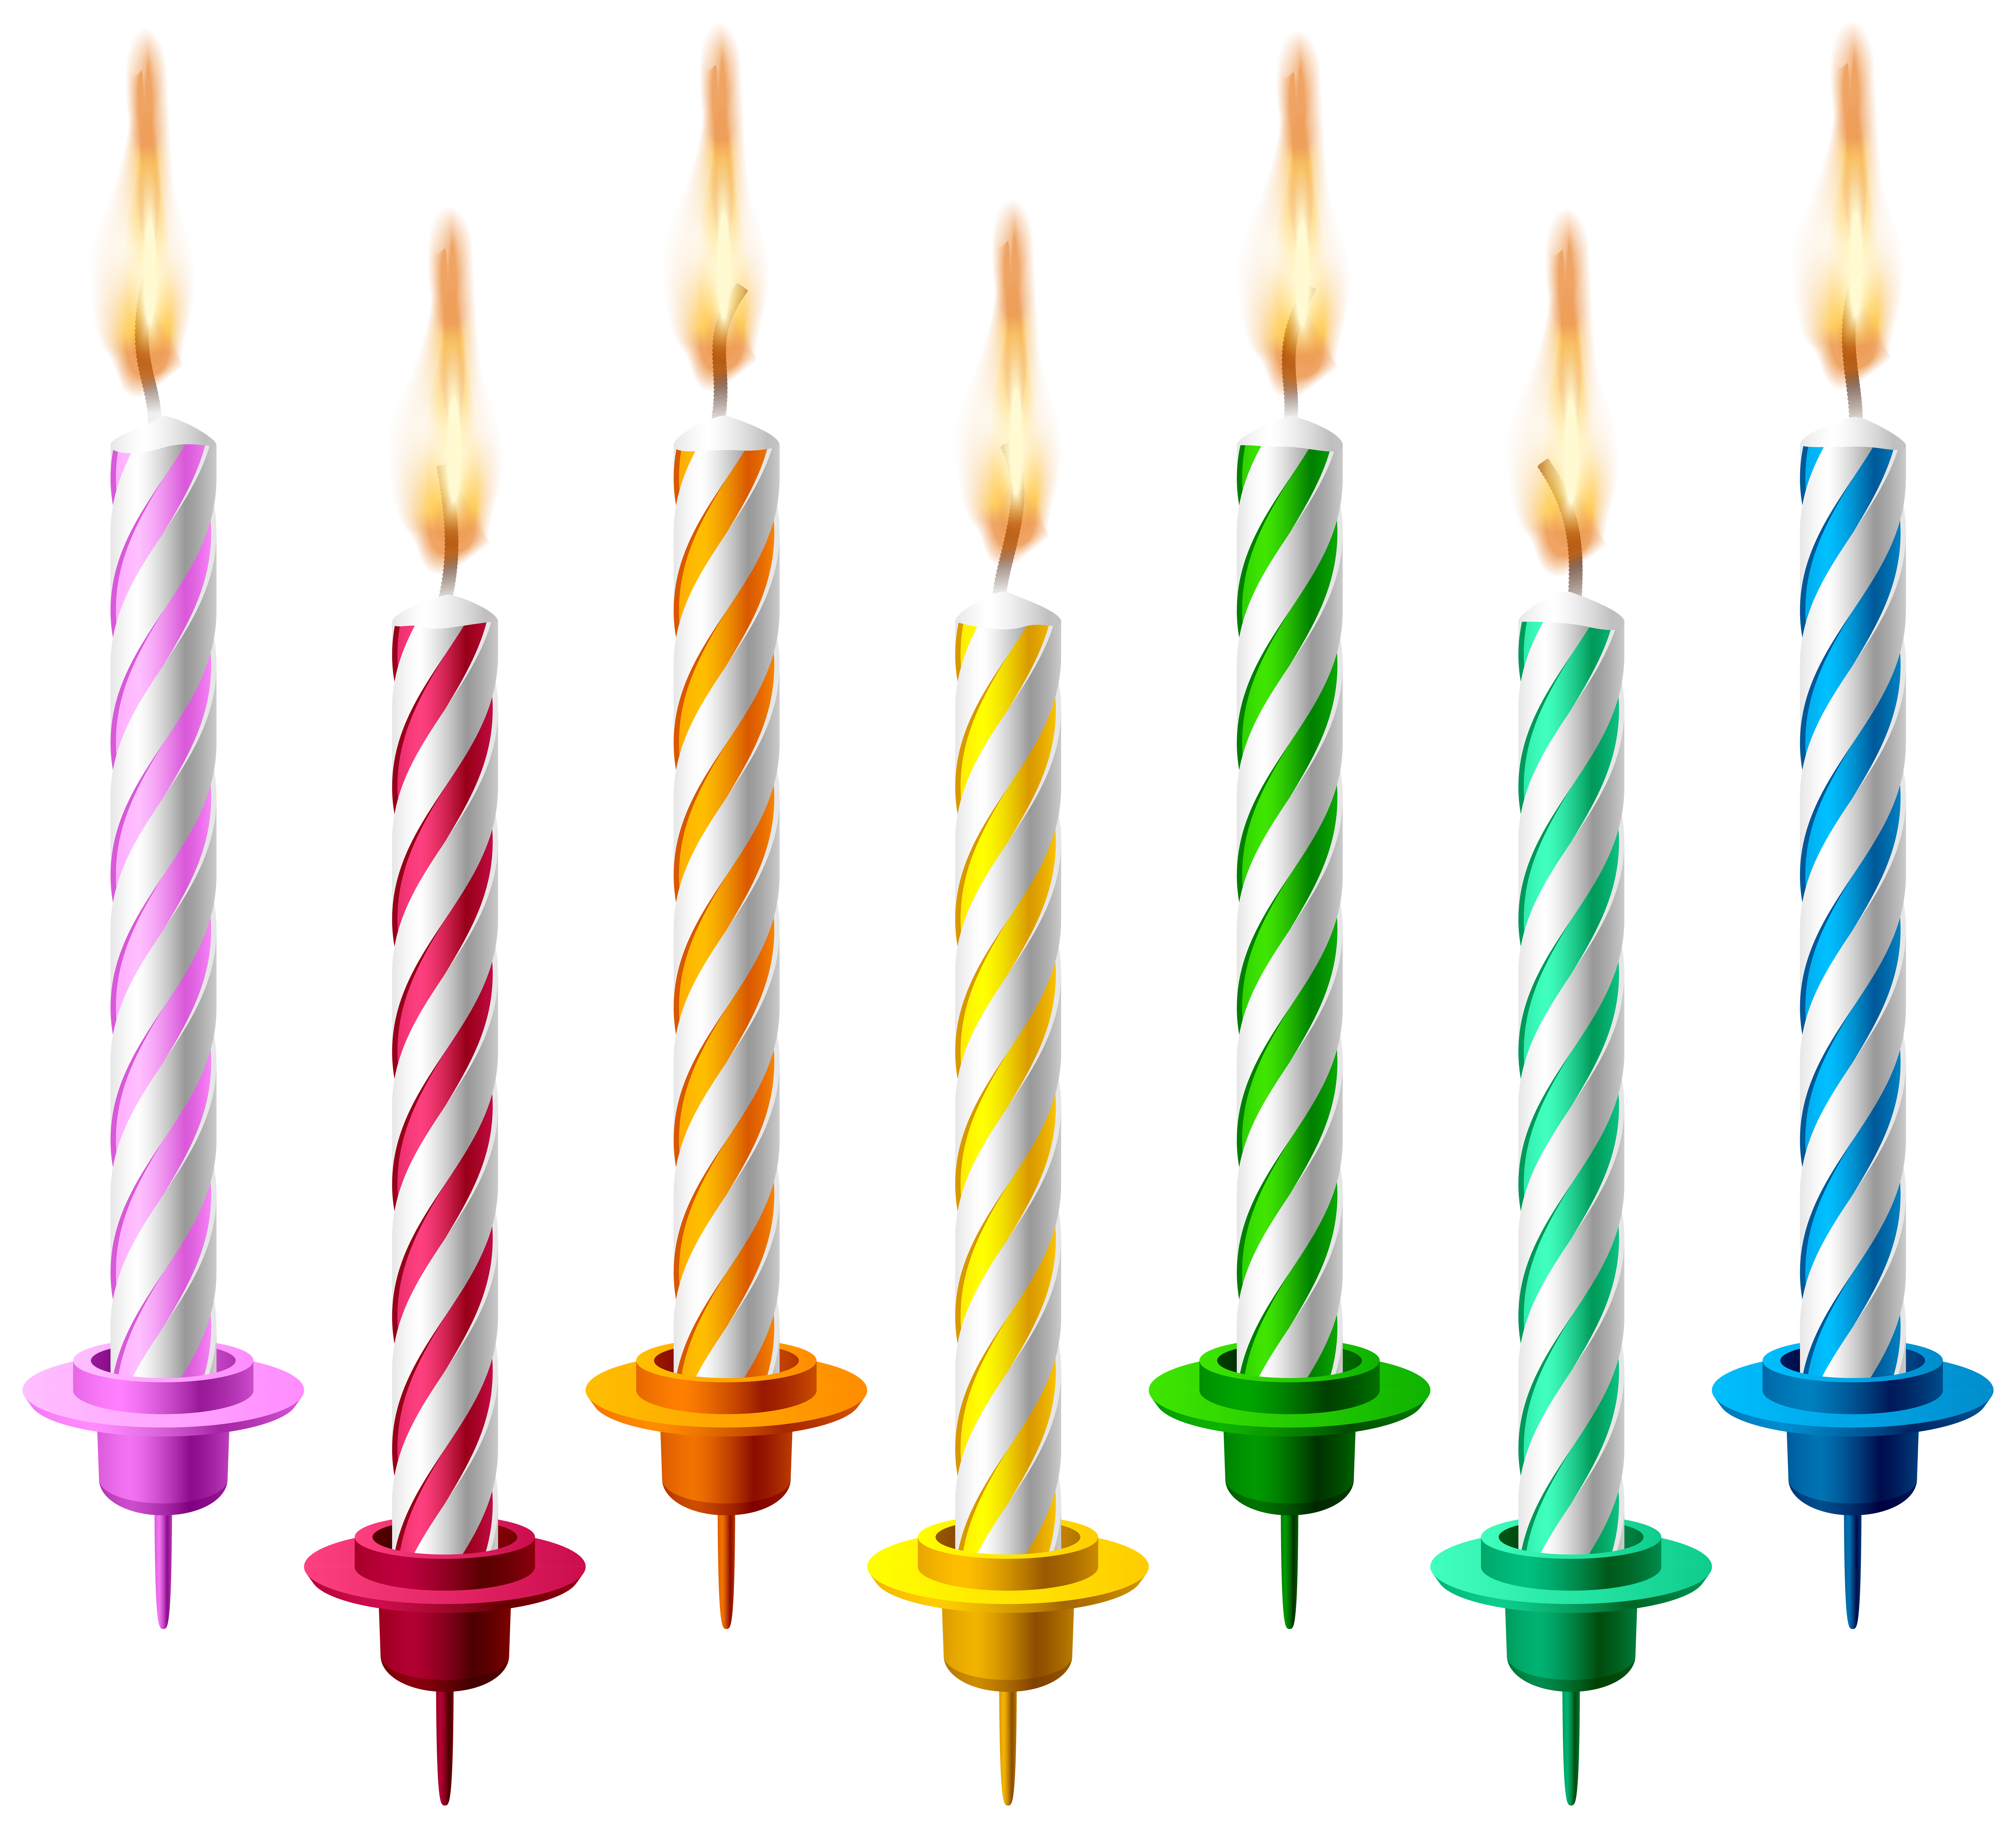 Birthday Candle Png Free Birthday Candle Png Transparent Images 28674 Pngio